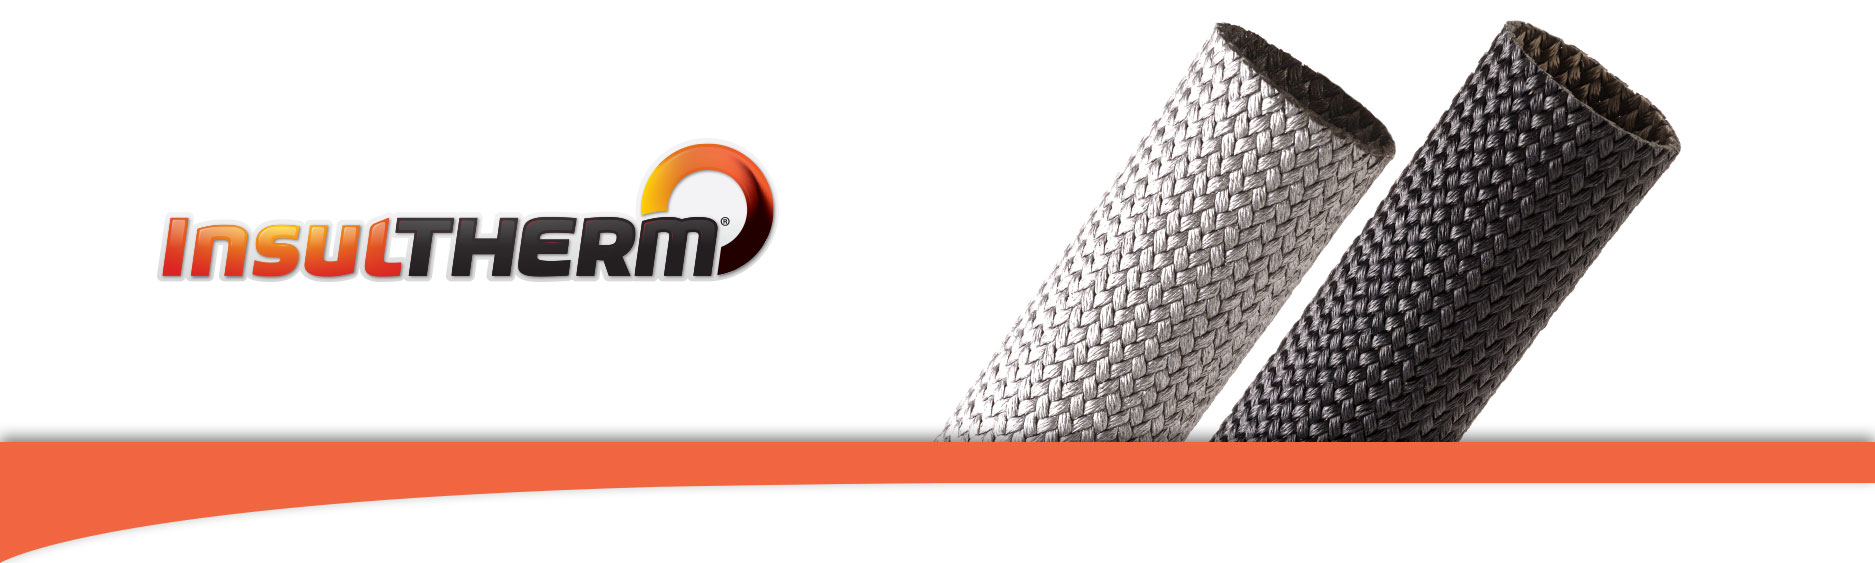 Insultherm Banner